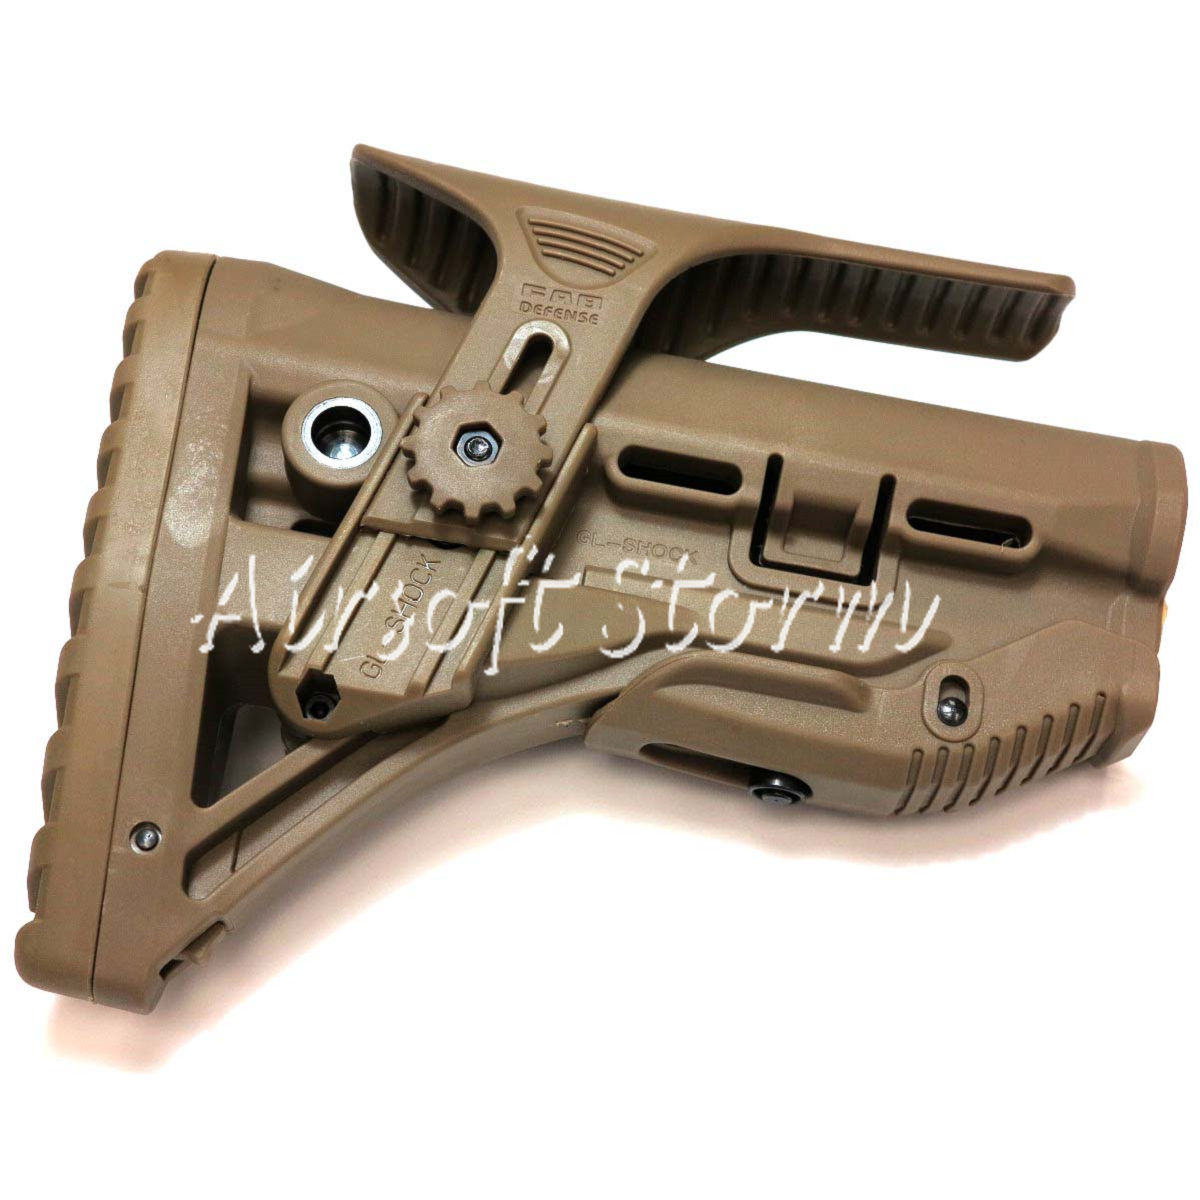 Airsoft Tactical Gear GL-Shock Style Recoil-Reducing M4/AR-15 Stock with Riser Dark Earth